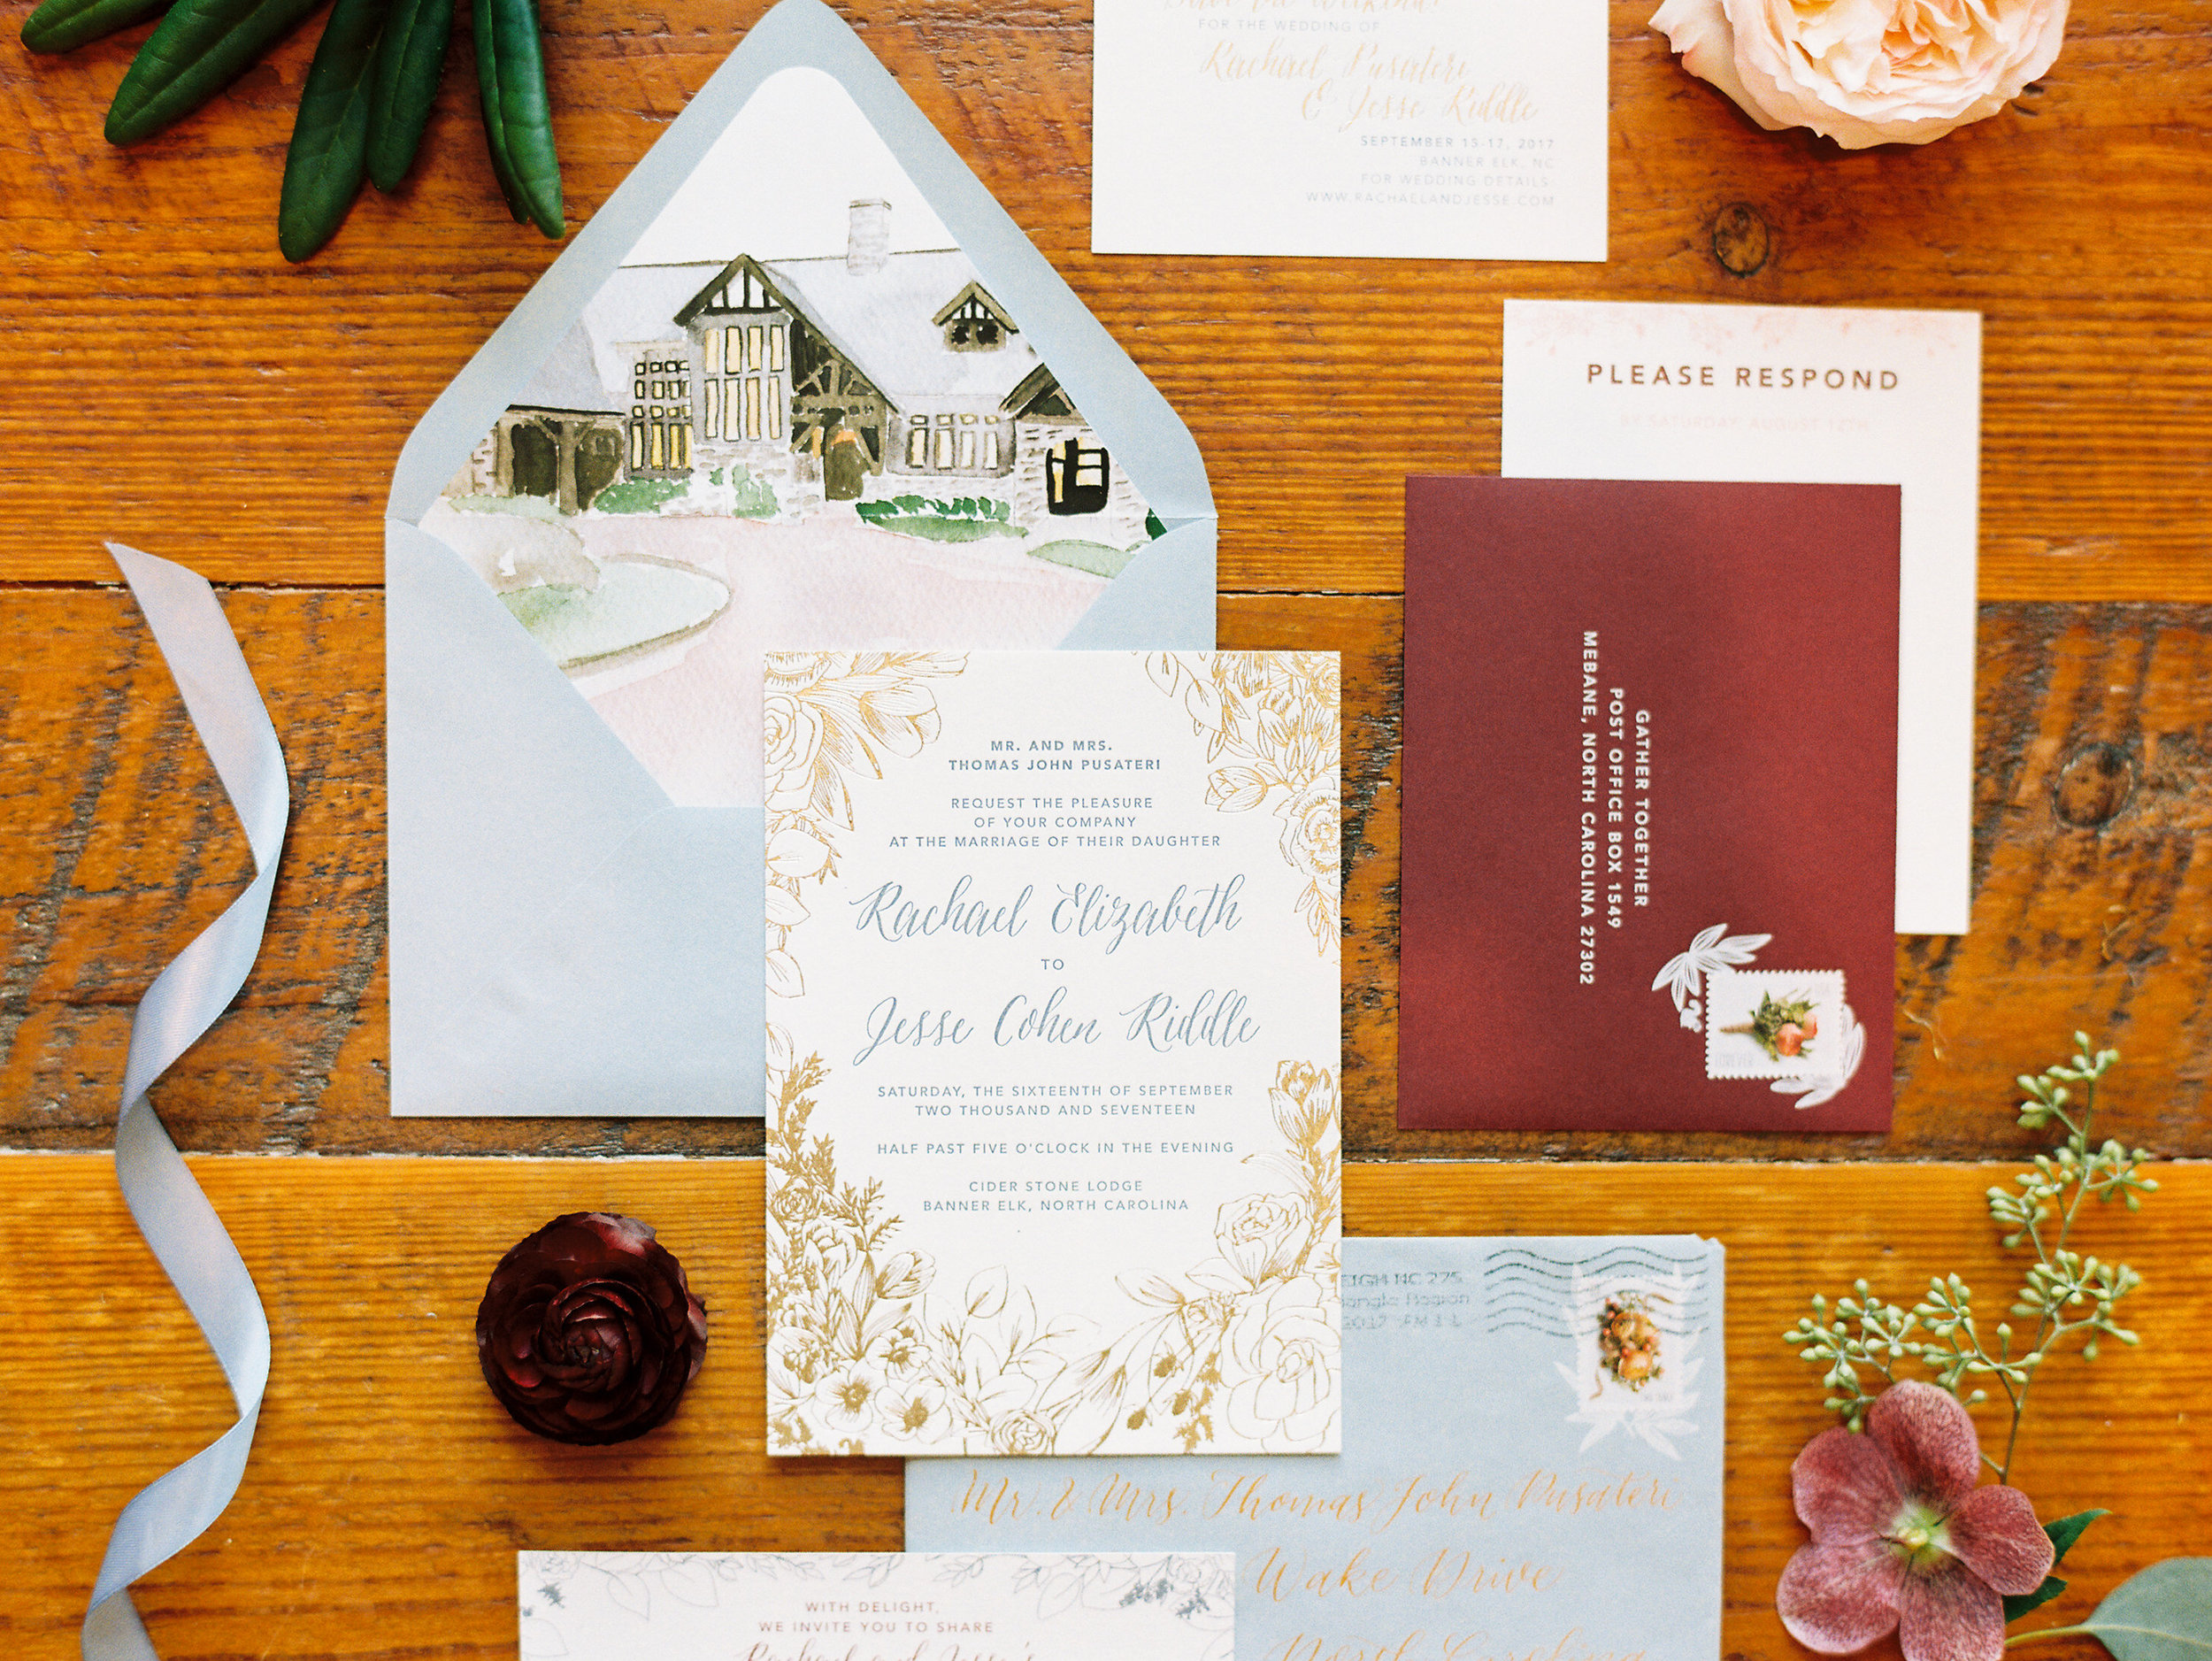 f352e-ncmountainhomeweddinginvitationsuitencmountainhomeweddinginvitationsuite.jpg